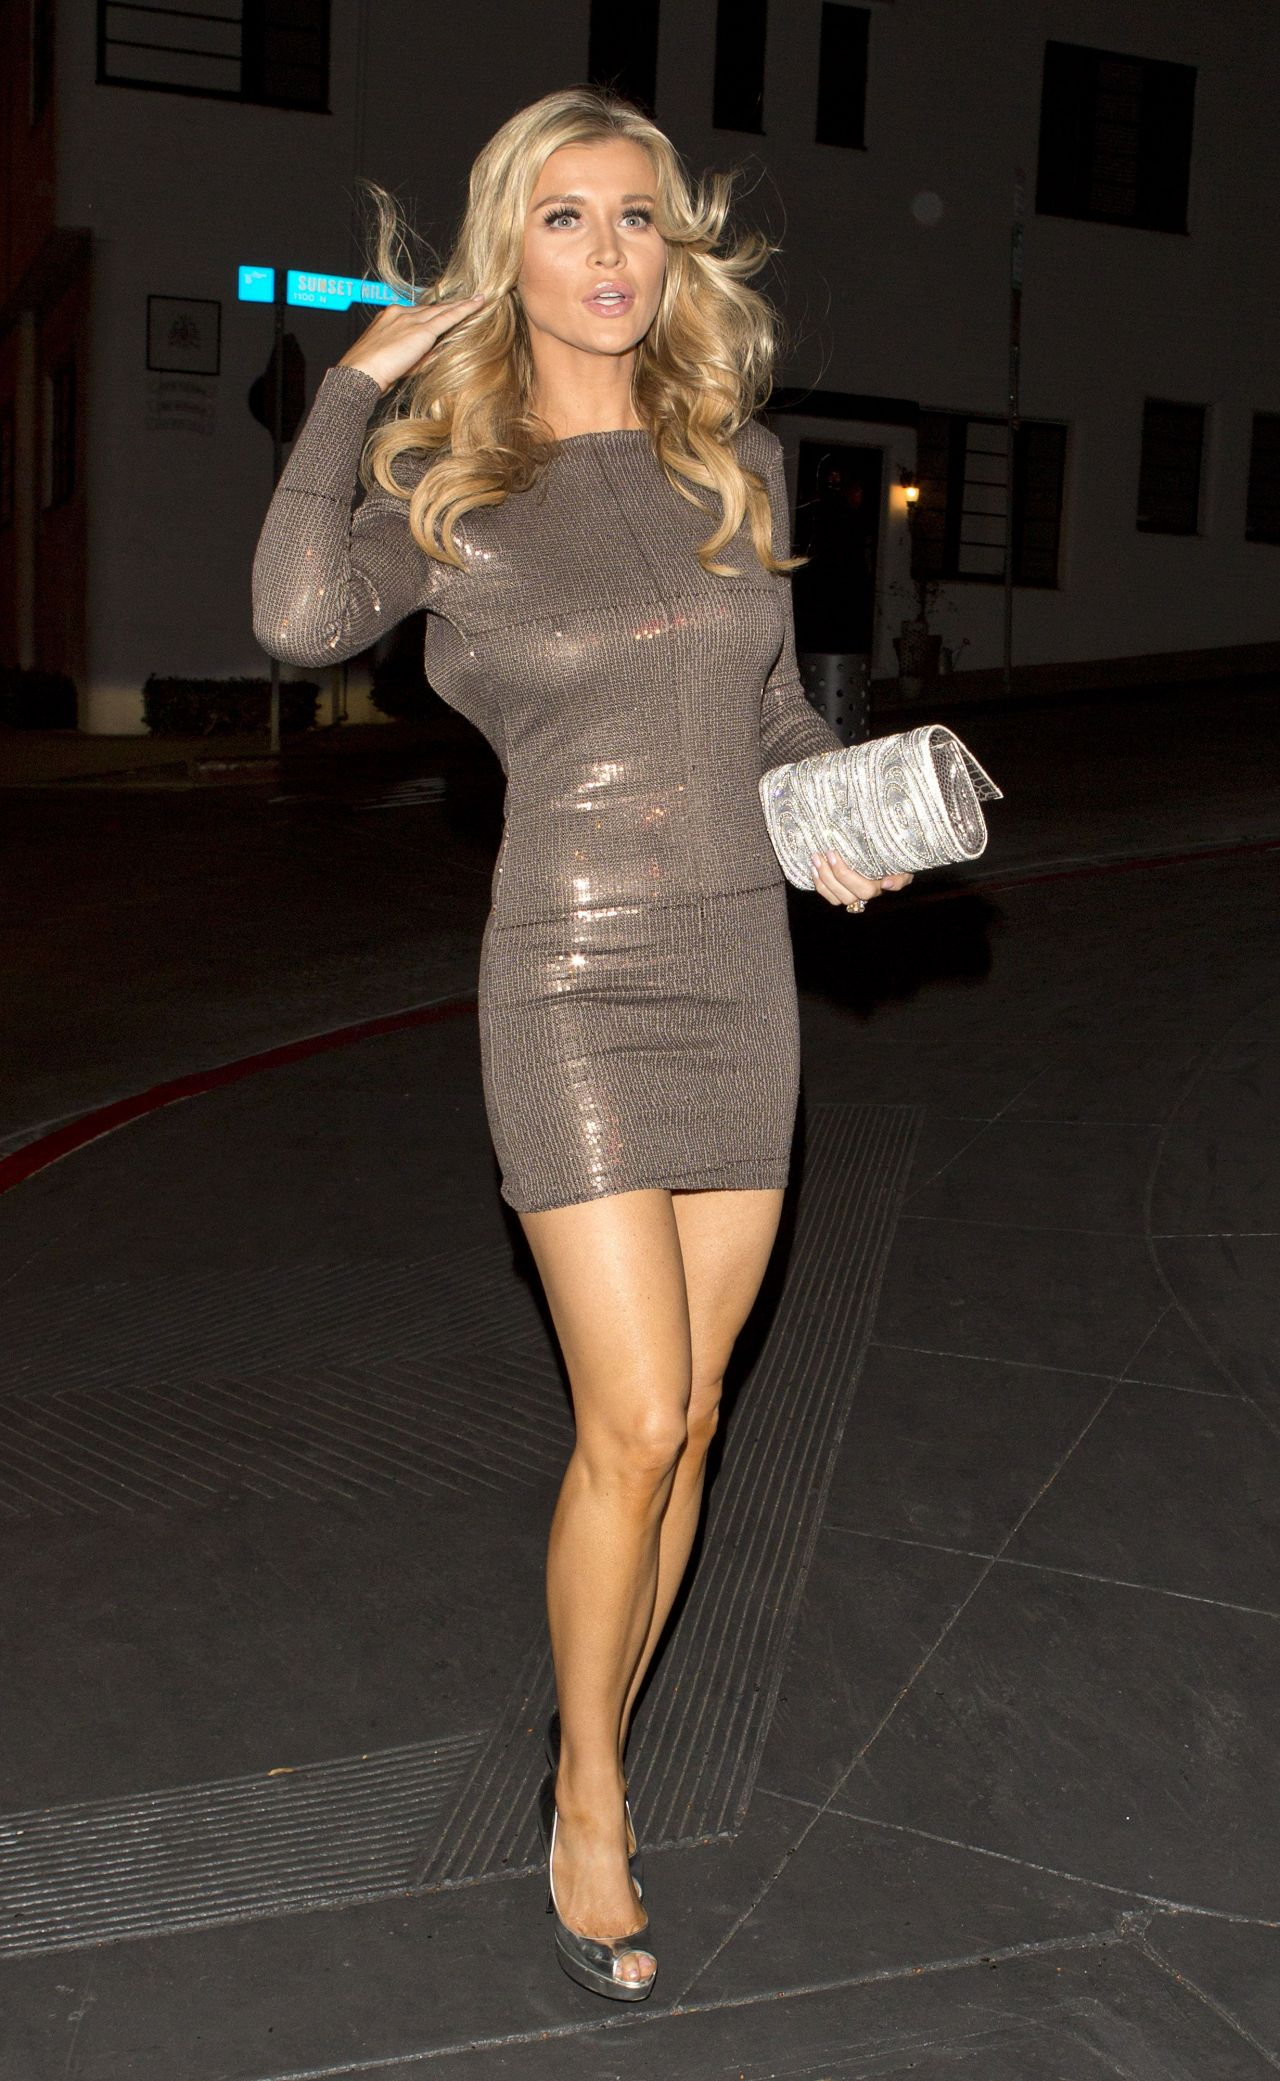 Joanna Krupa in Skintight Dress In West Hollywood ...